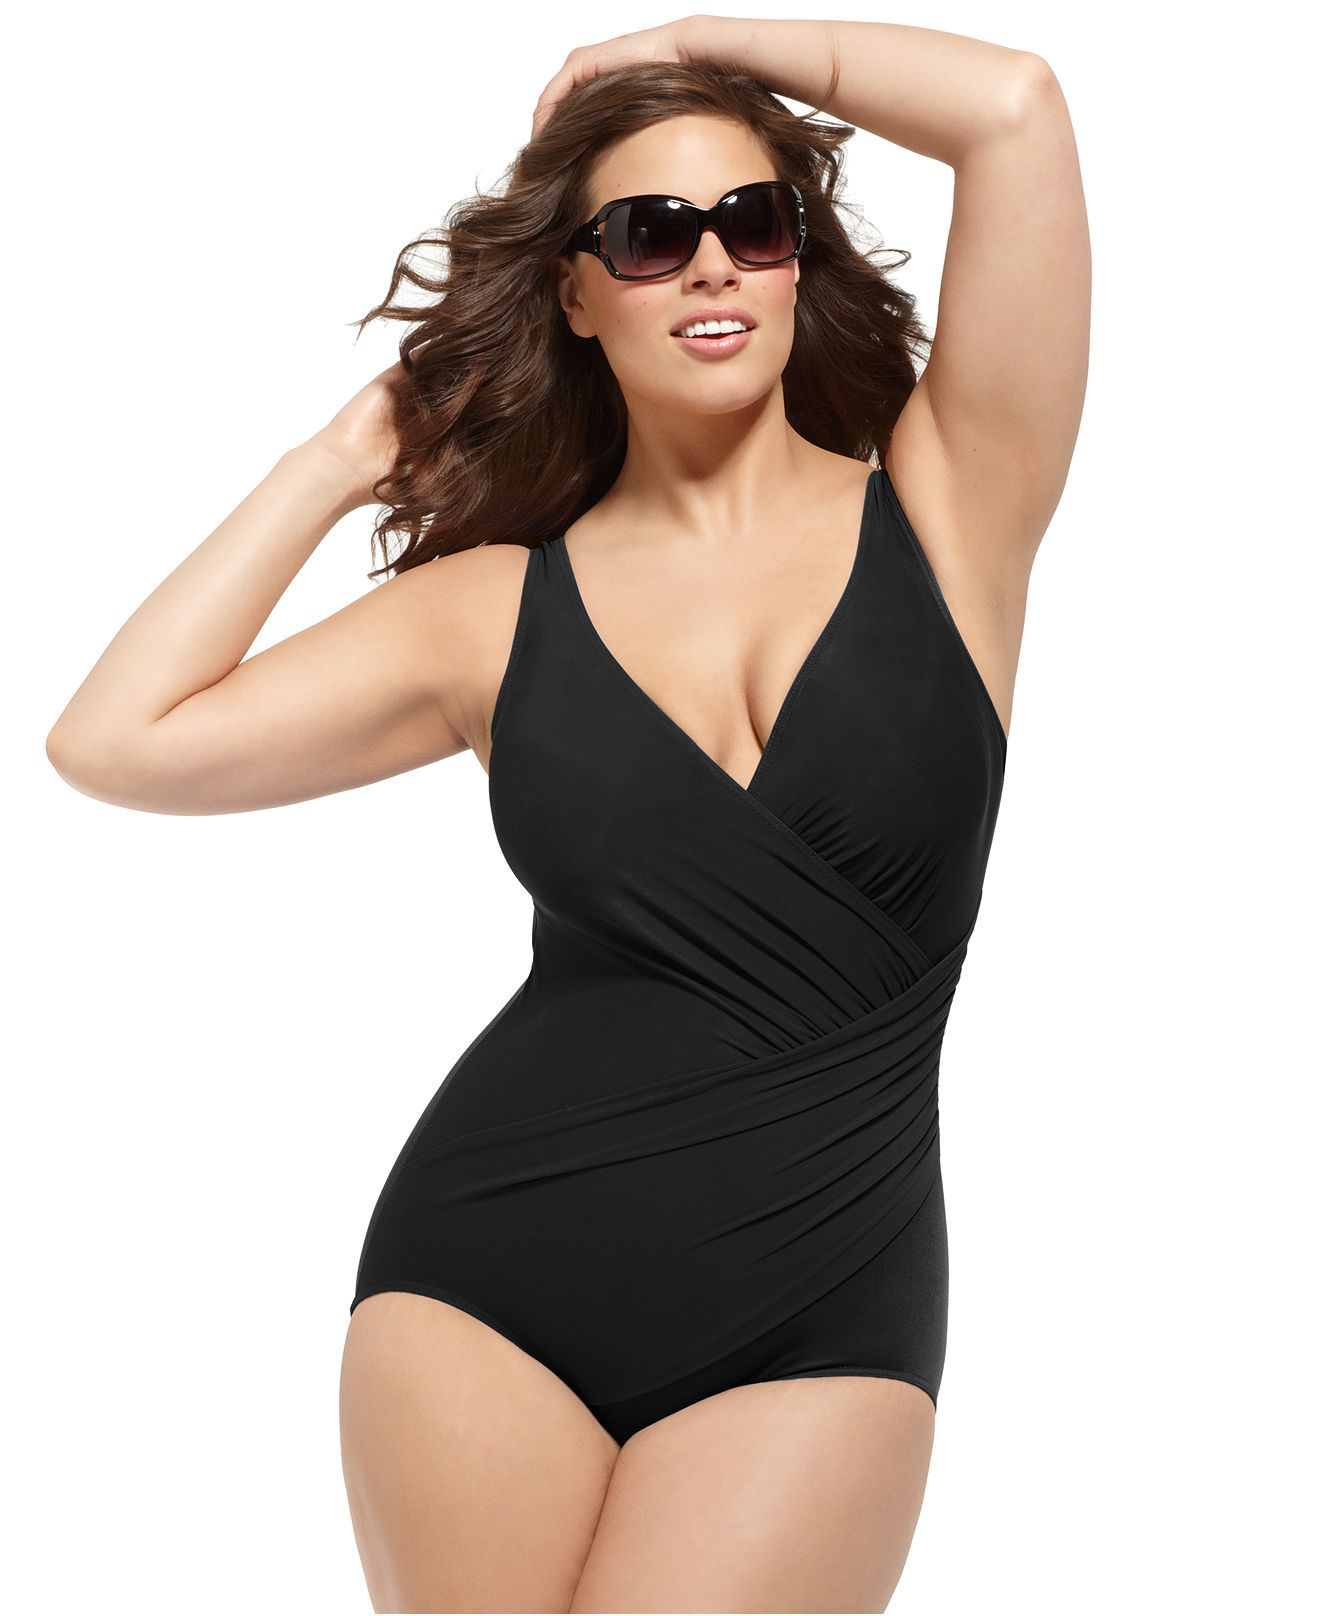 891f4b5ada2dd Miraclesuit Plus Size Swimsuit, Oceanus Tummy-Control One-Piece - Plus Size  Swimwear - Plus Sizes - Macys